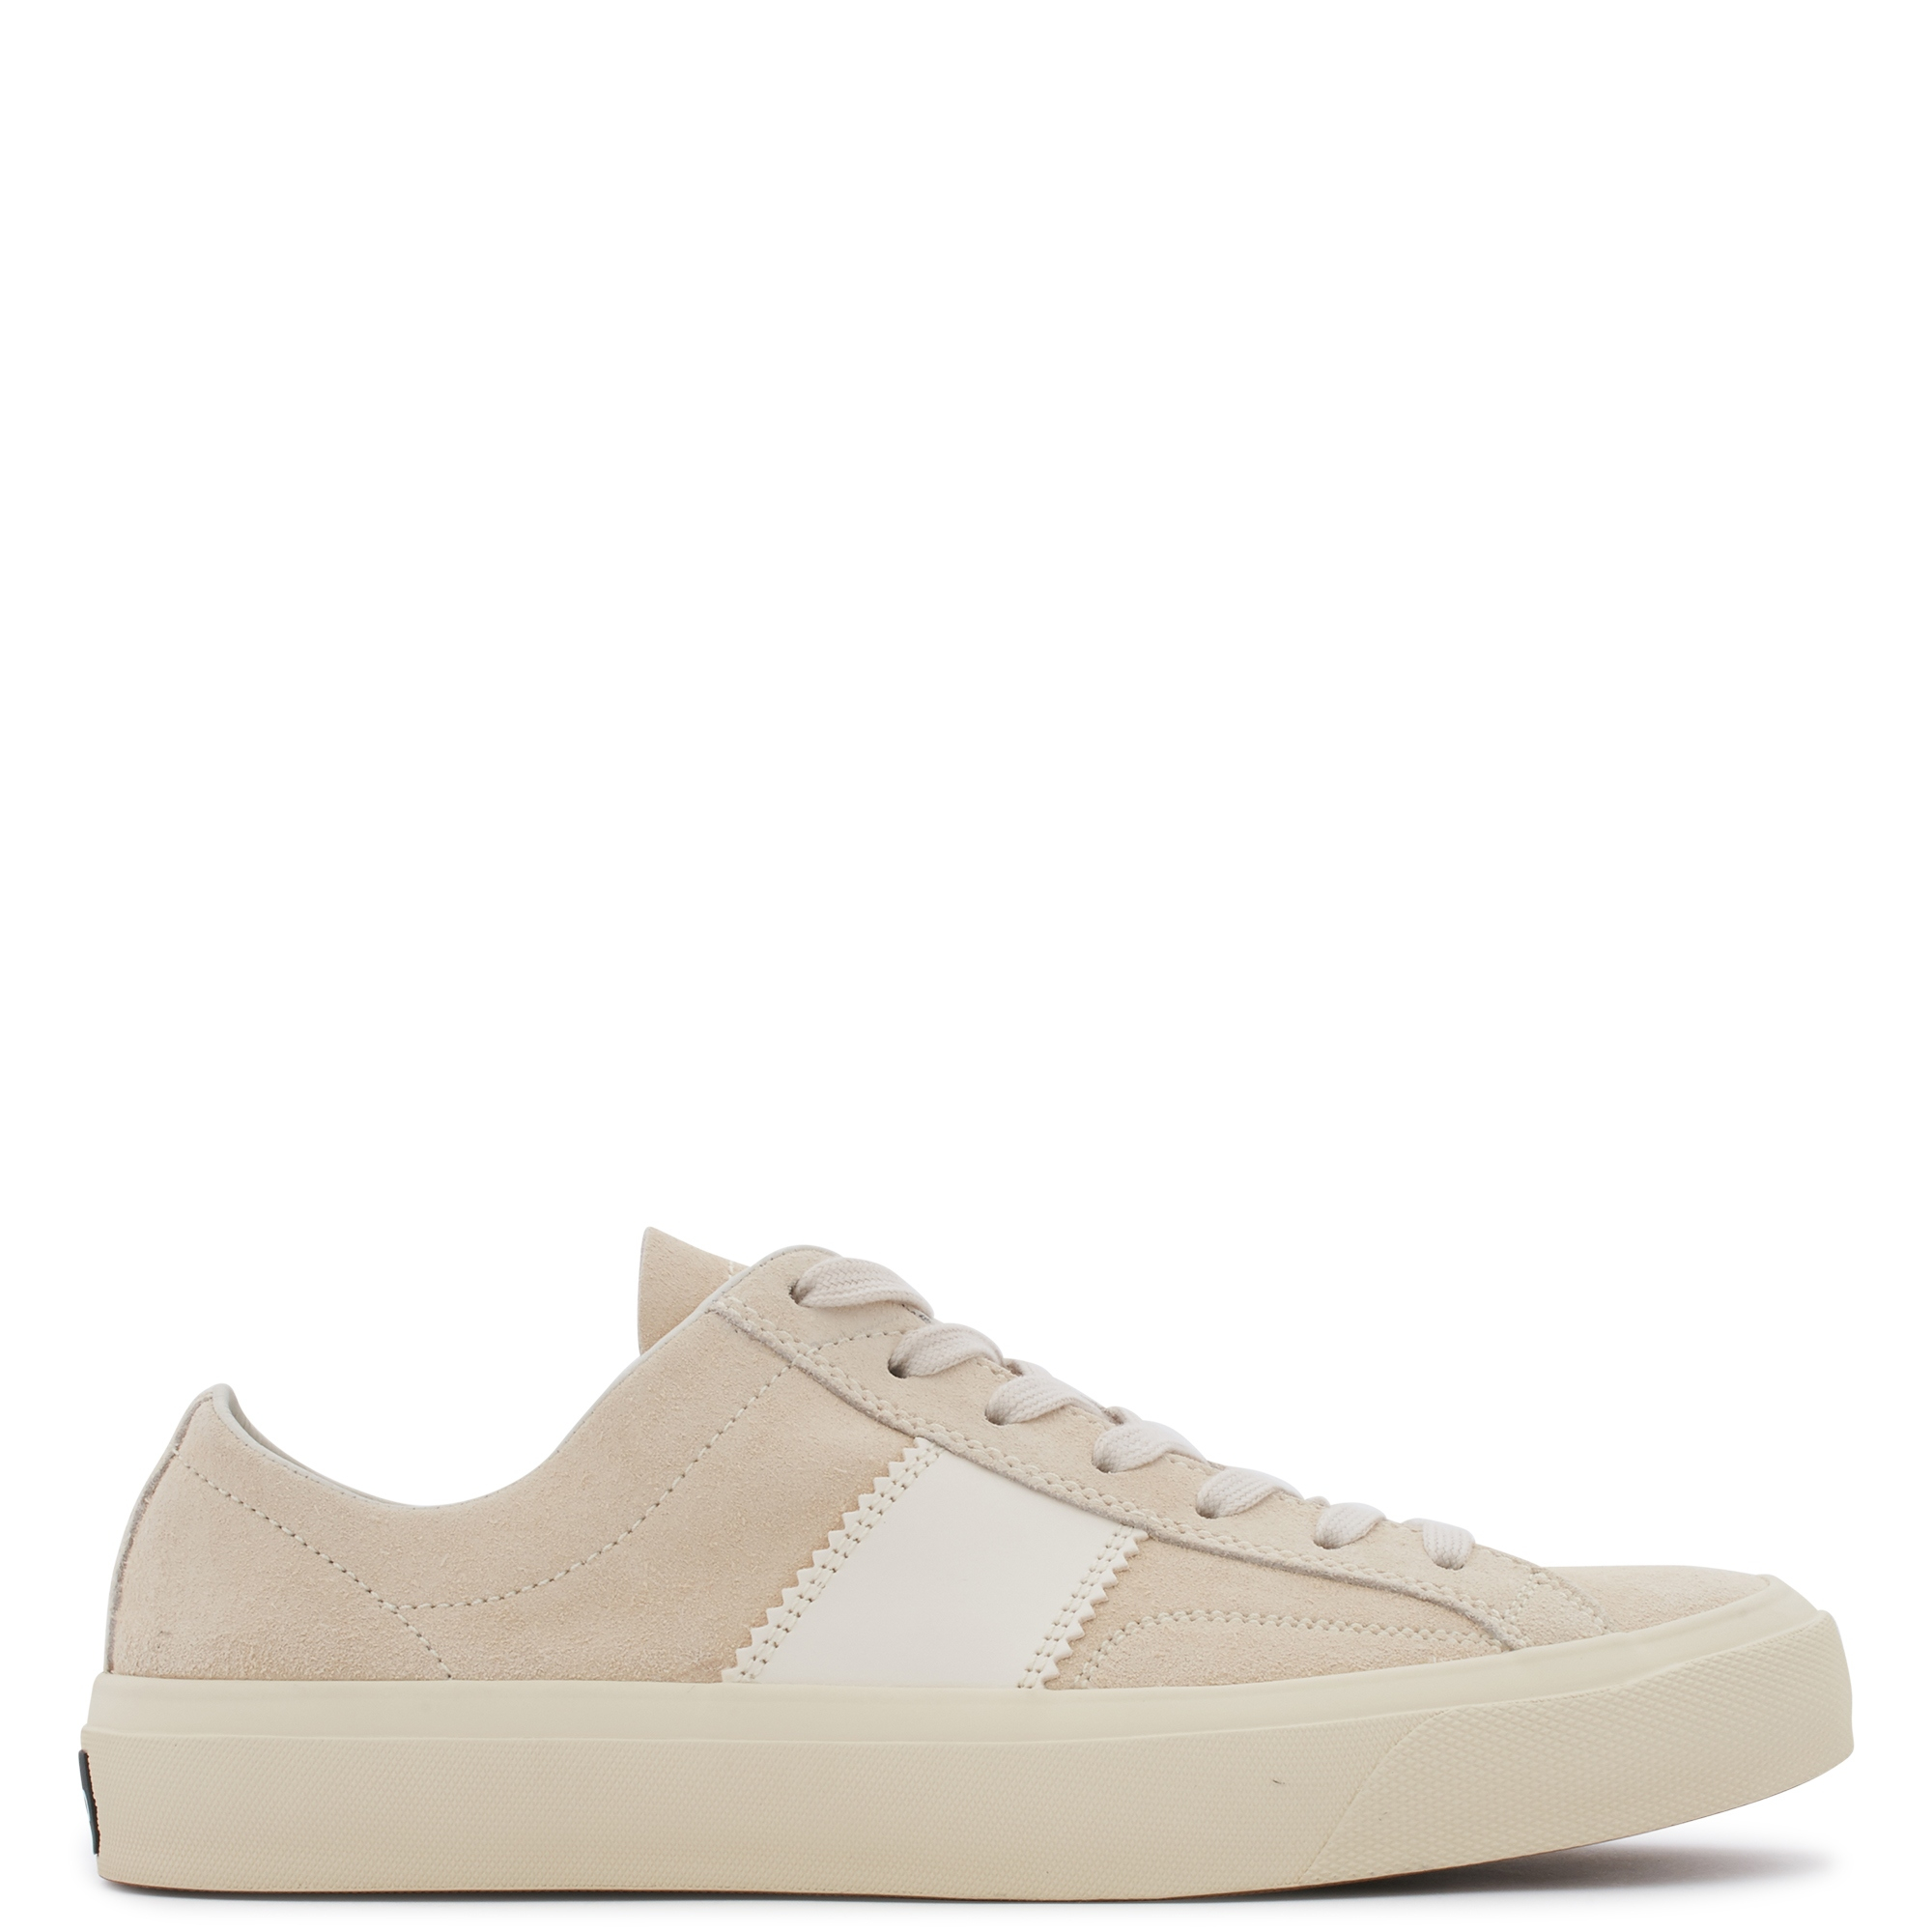 tom ford kenbridge suede sneakers in white for lyst